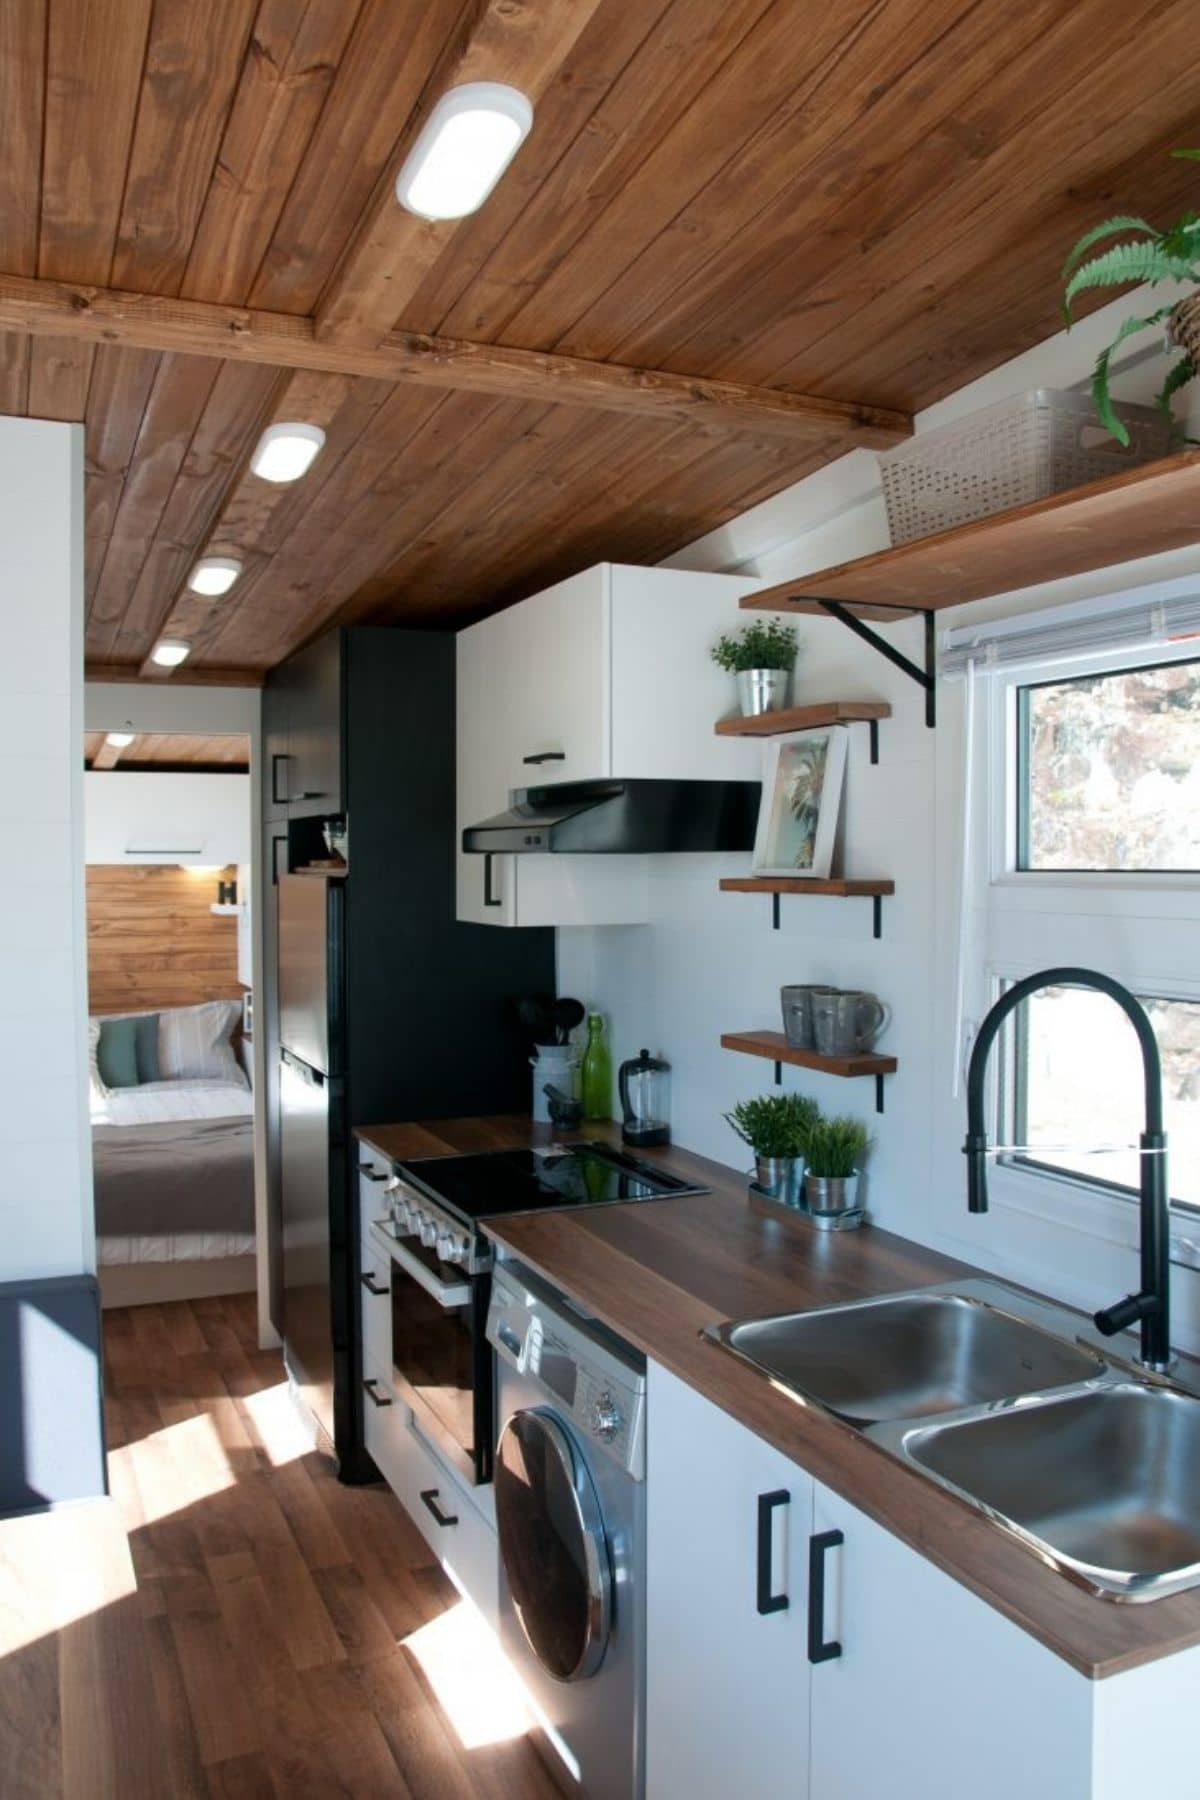 butcher block counter tops with deep stainless steel sink over white cabinets in kitchen